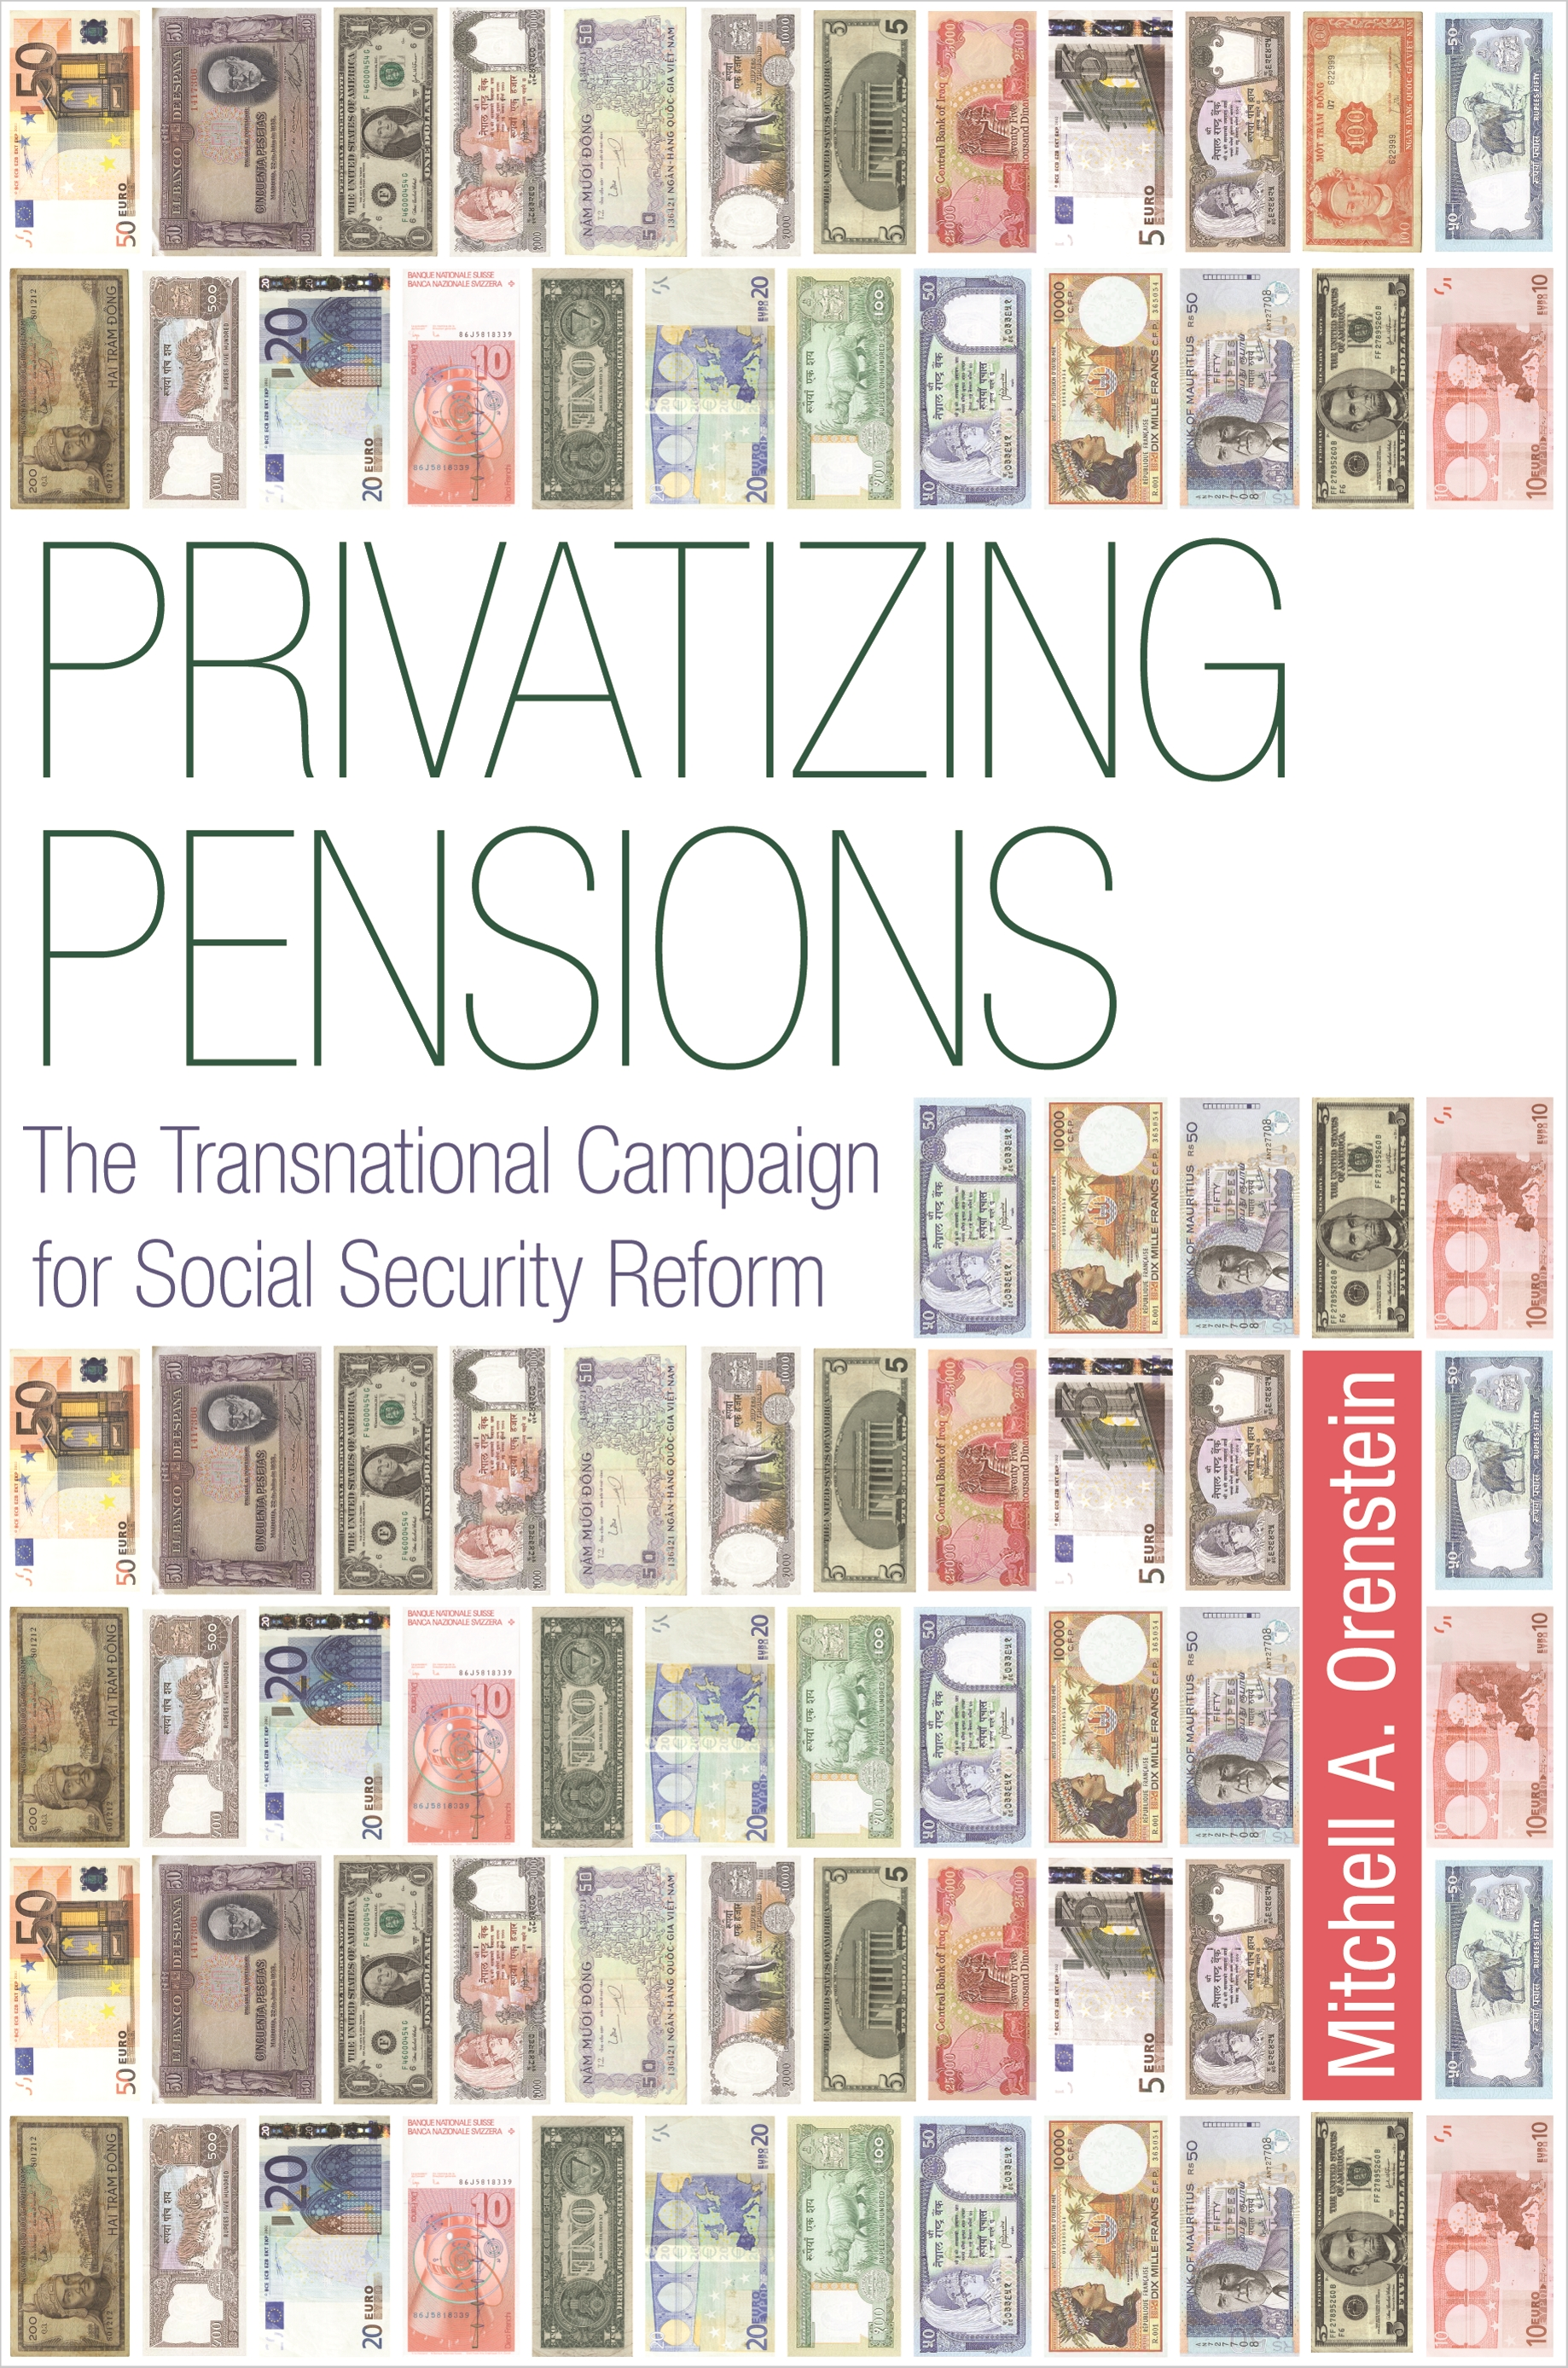 Download Ebook Privatizing Pensions by Mitchell A. Orenstein Pdf